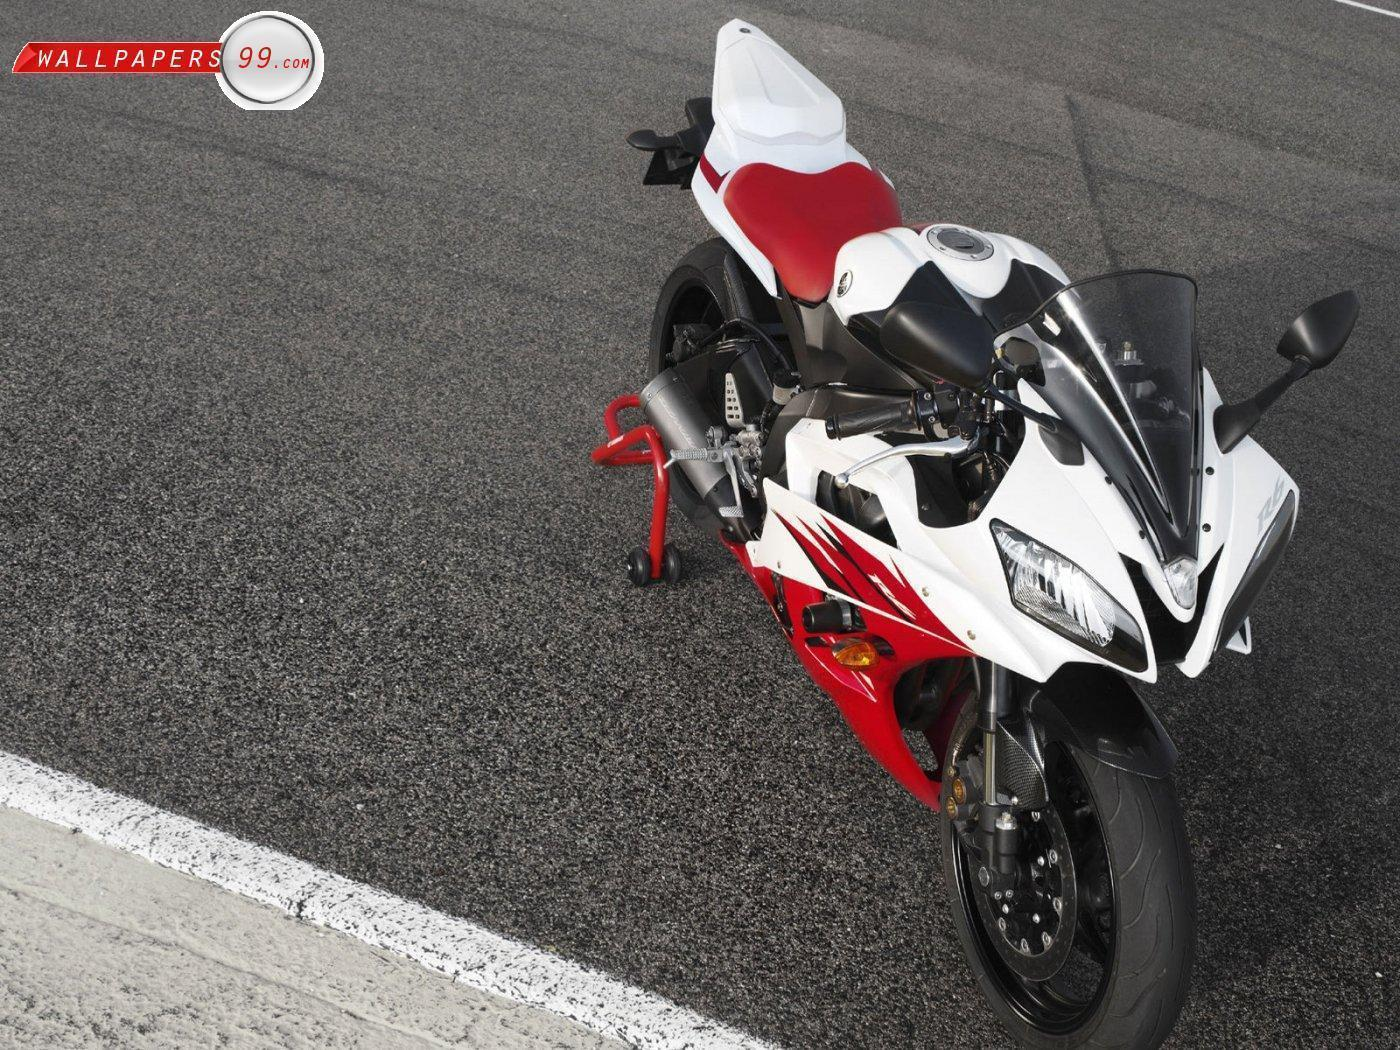 Yamaha YZF R6 Wallpapers Picture Image 1400x1050 18991